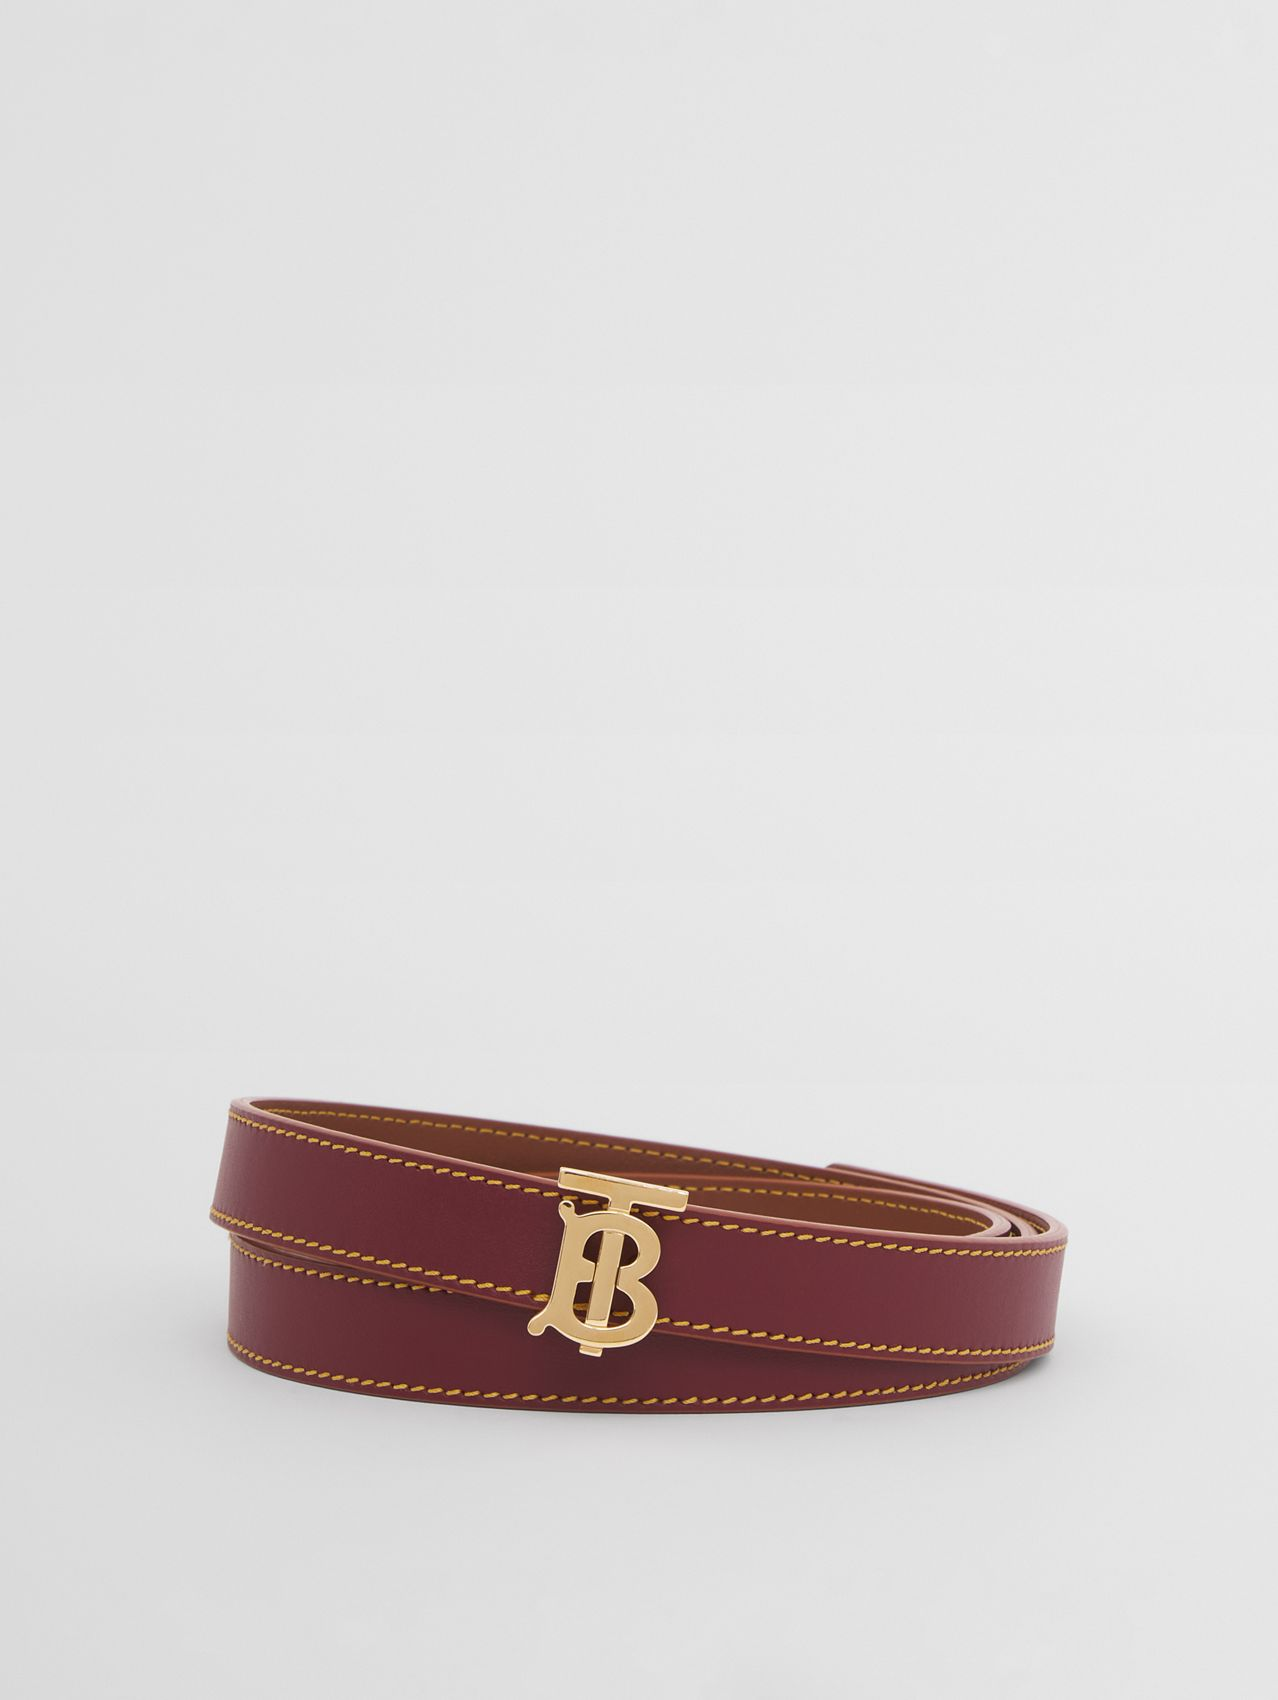 Reversible Monogram Motif Leather Belt in Garnet/tan/terracotta